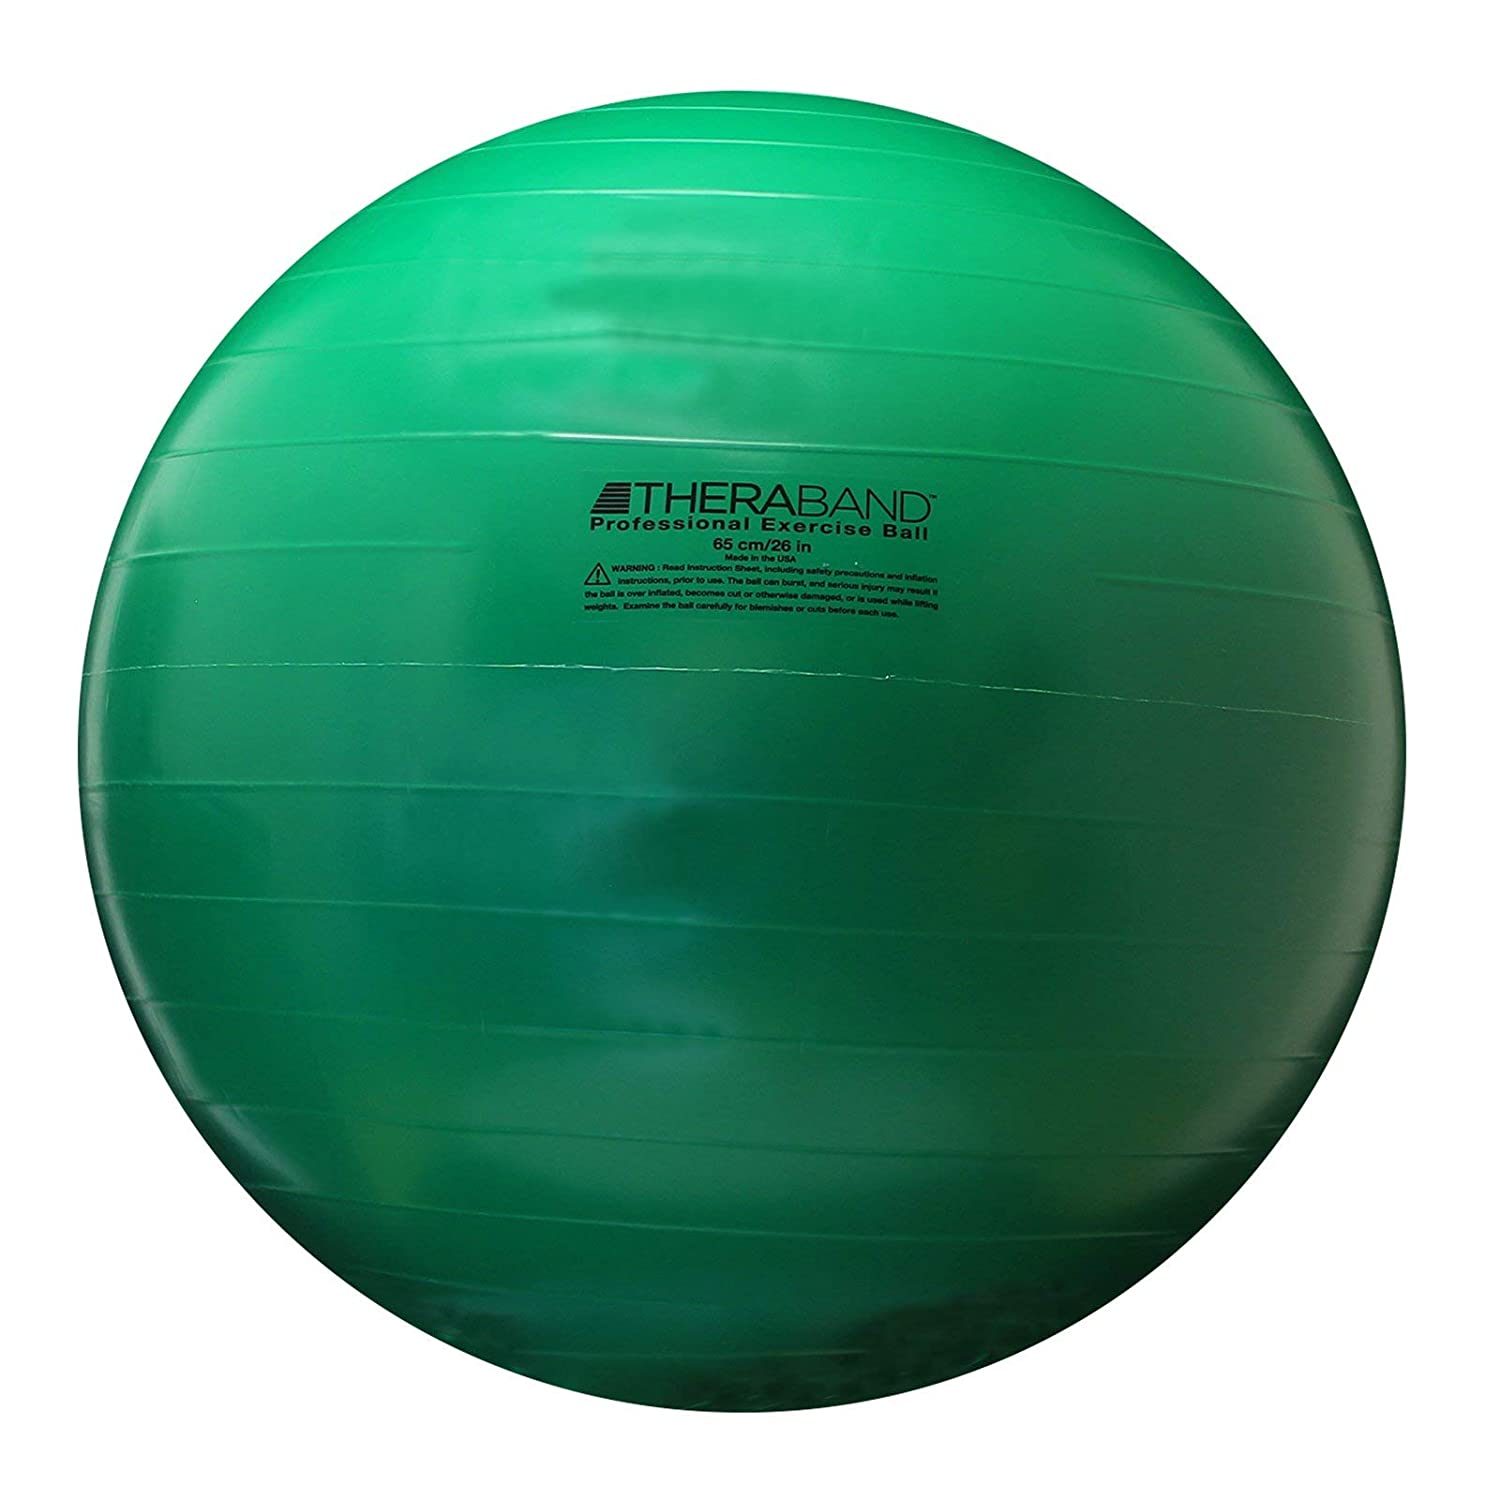 """TheraBand Exercise Ball, Stability Ball with 65 cm Diameter for Athletes 5'7"""" to 6'1"""" Tall, Standard Fitness Ball for Posture, Balance, Yoga, Pilates, Core, & Rehab, Green"""